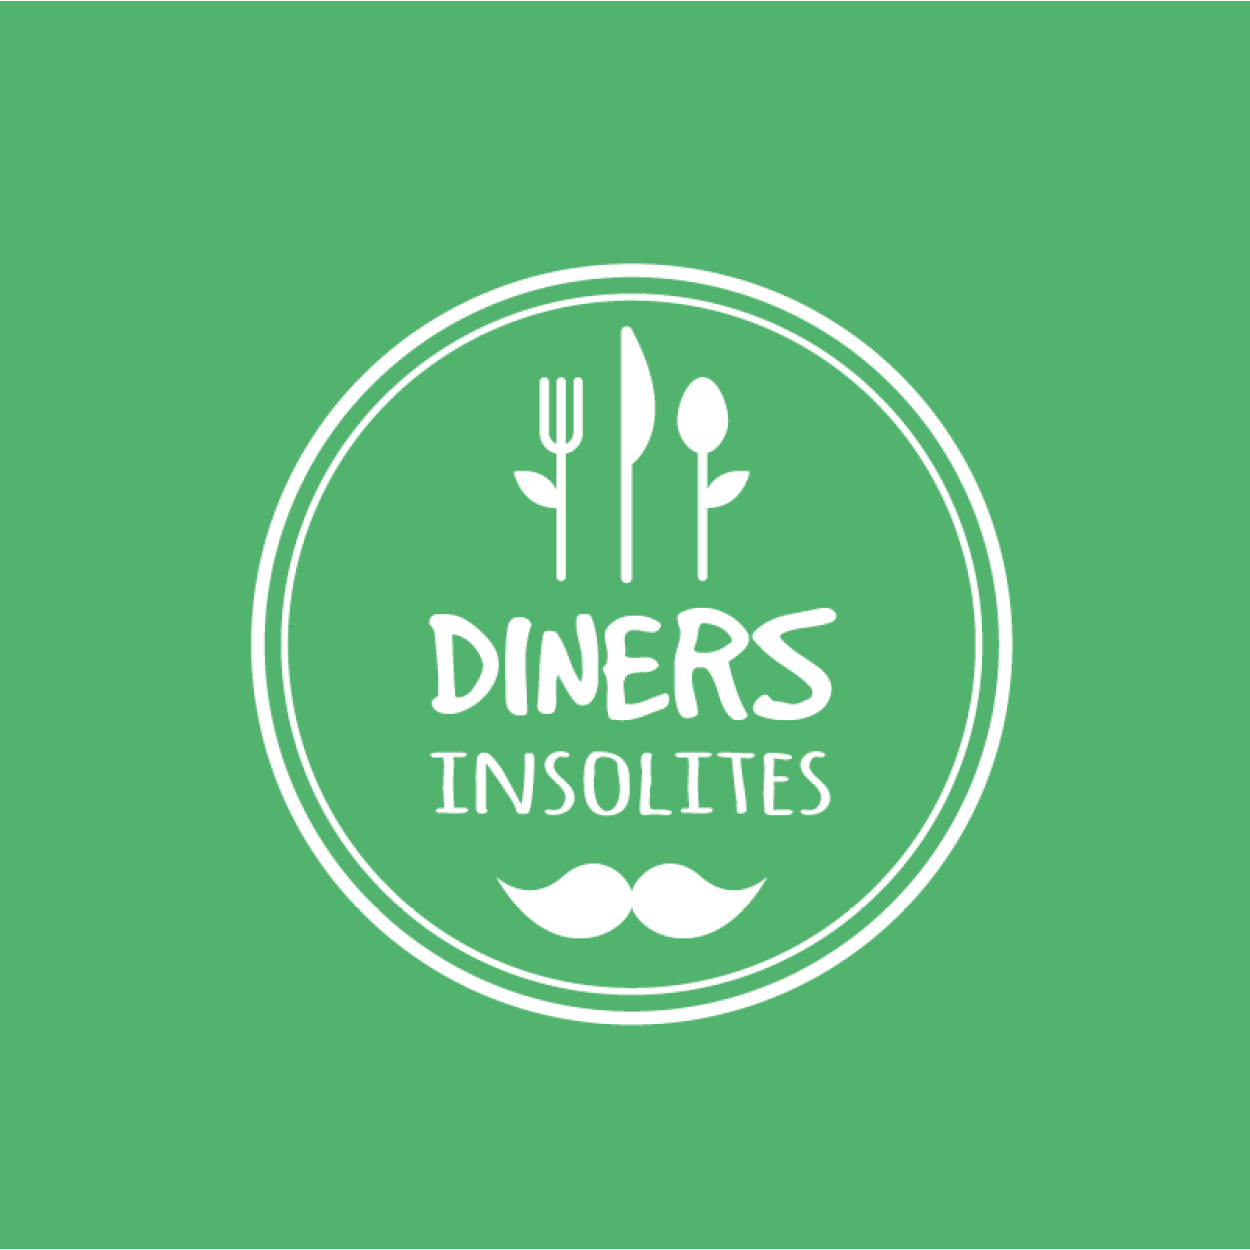 logo_diners_insolites_carre.png